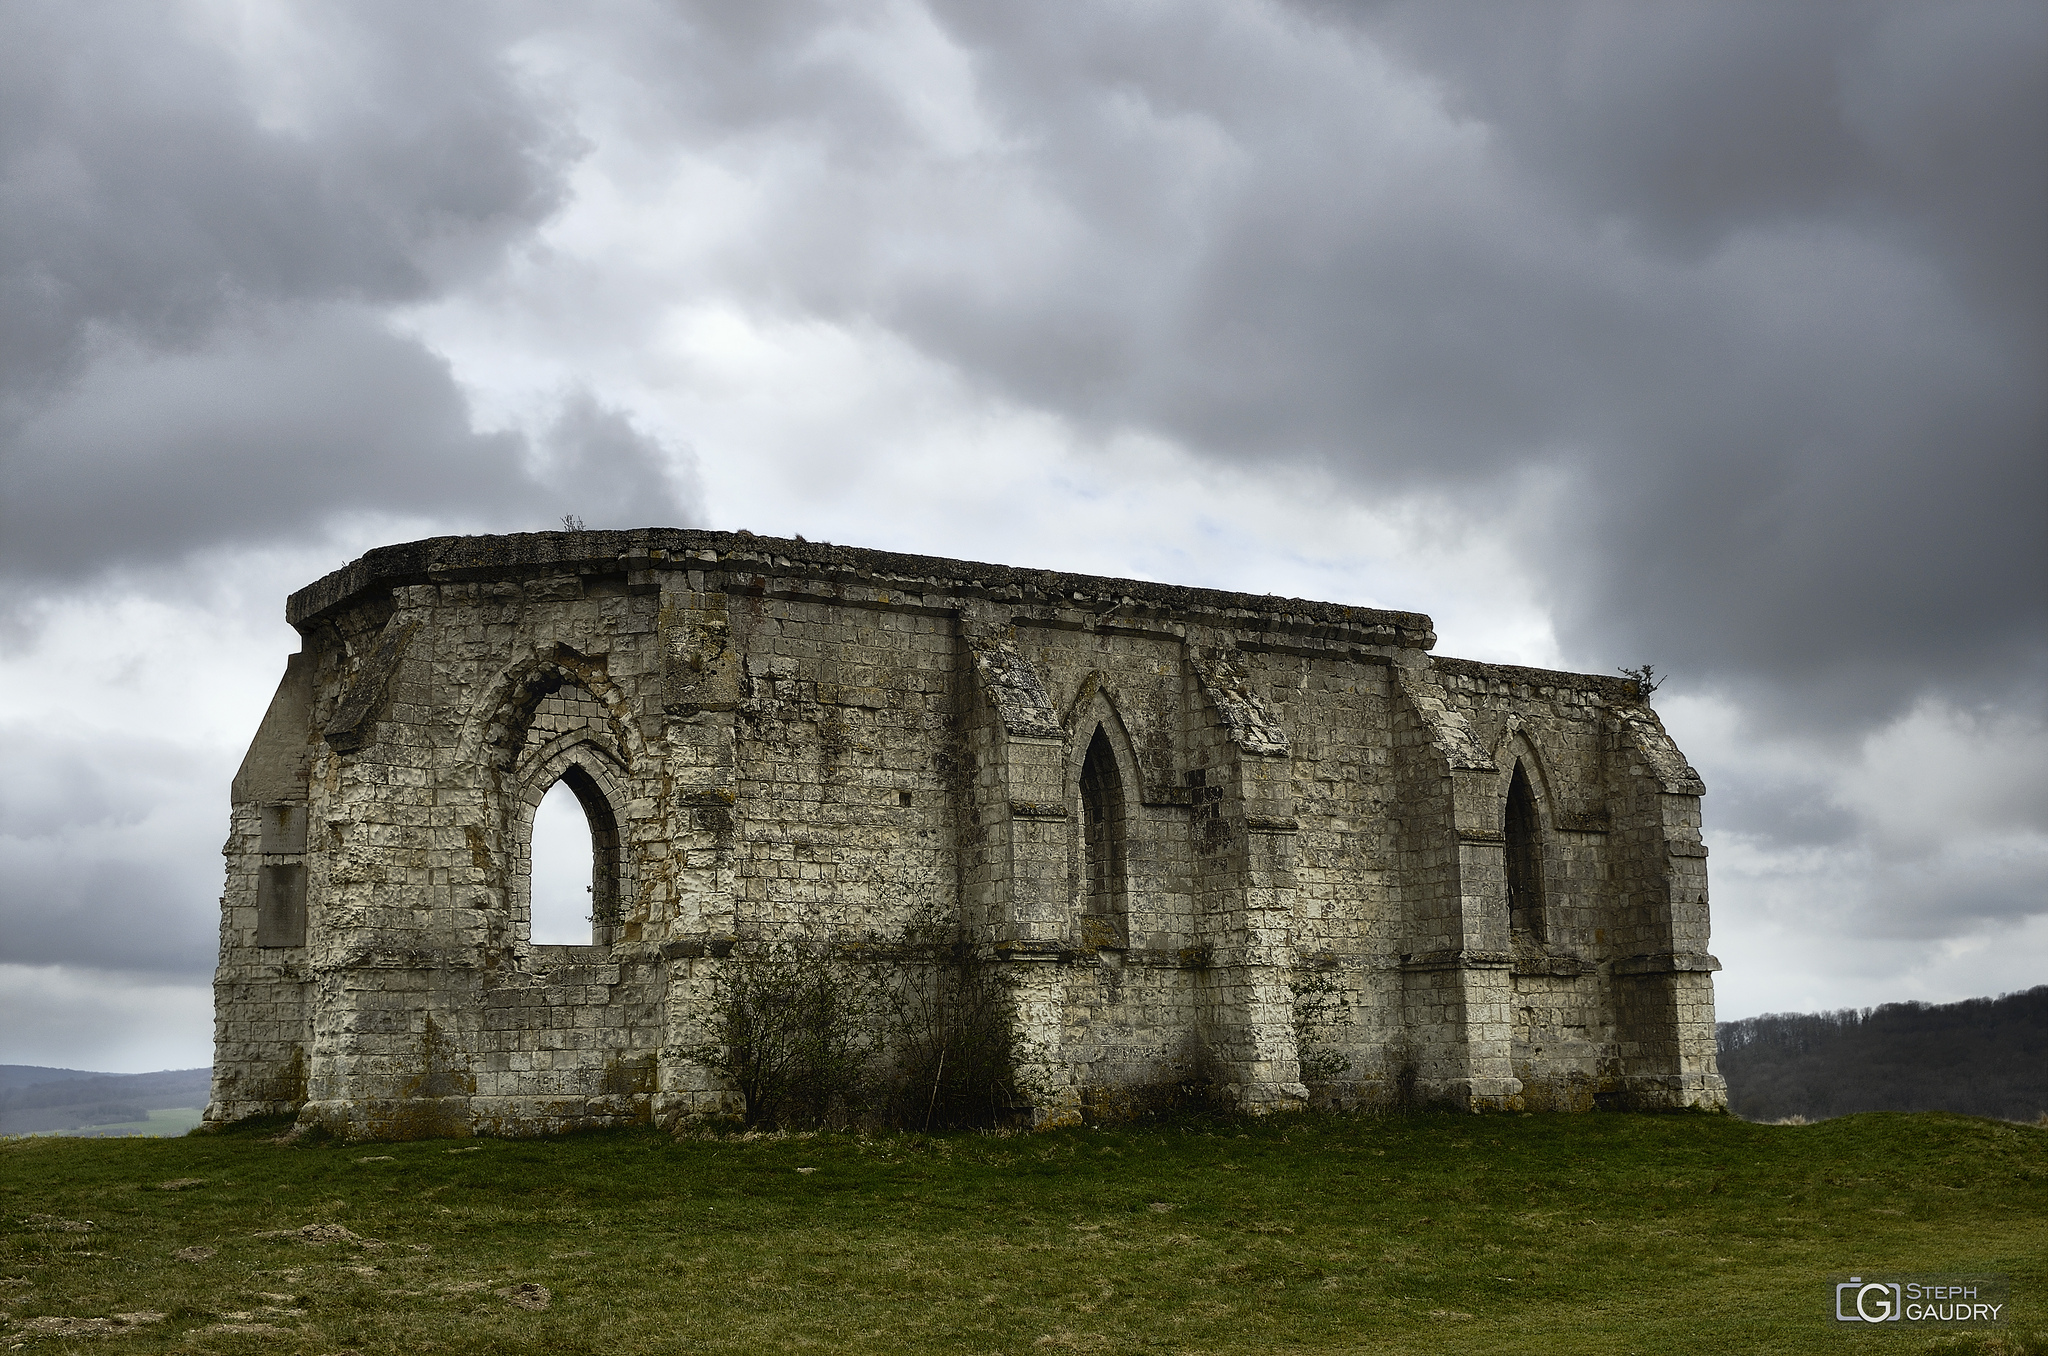 The ruins of the 13th century chapel of Saint Louis at Guémy [Klik om de diavoorstelling te starten]